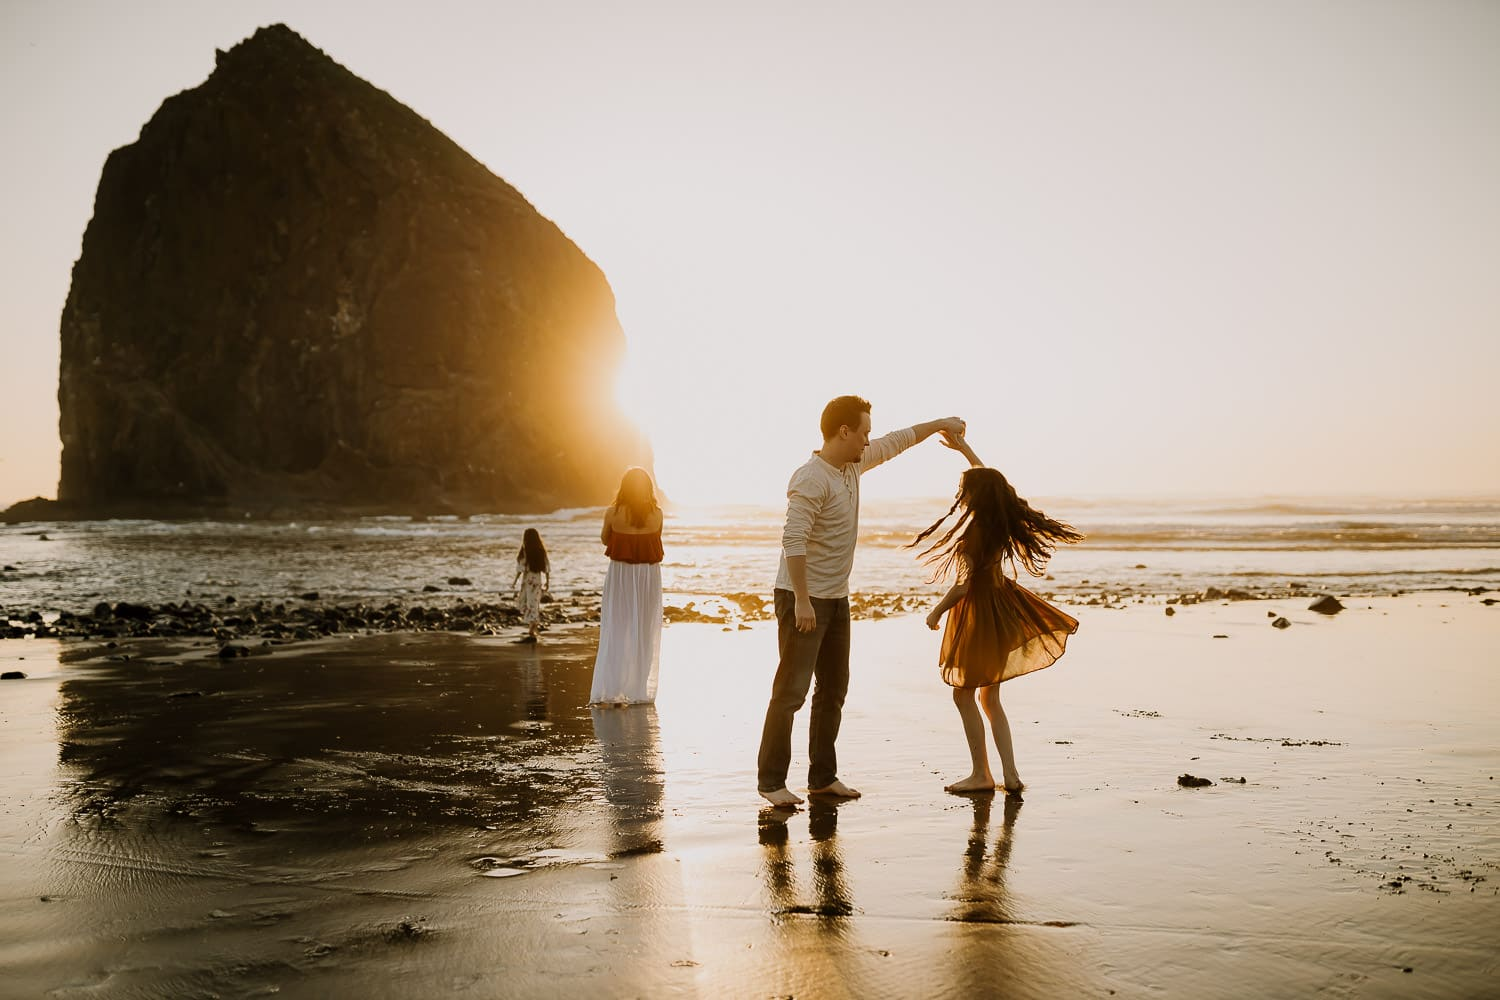 oregon coast photographer photos of family dancing together on the beach